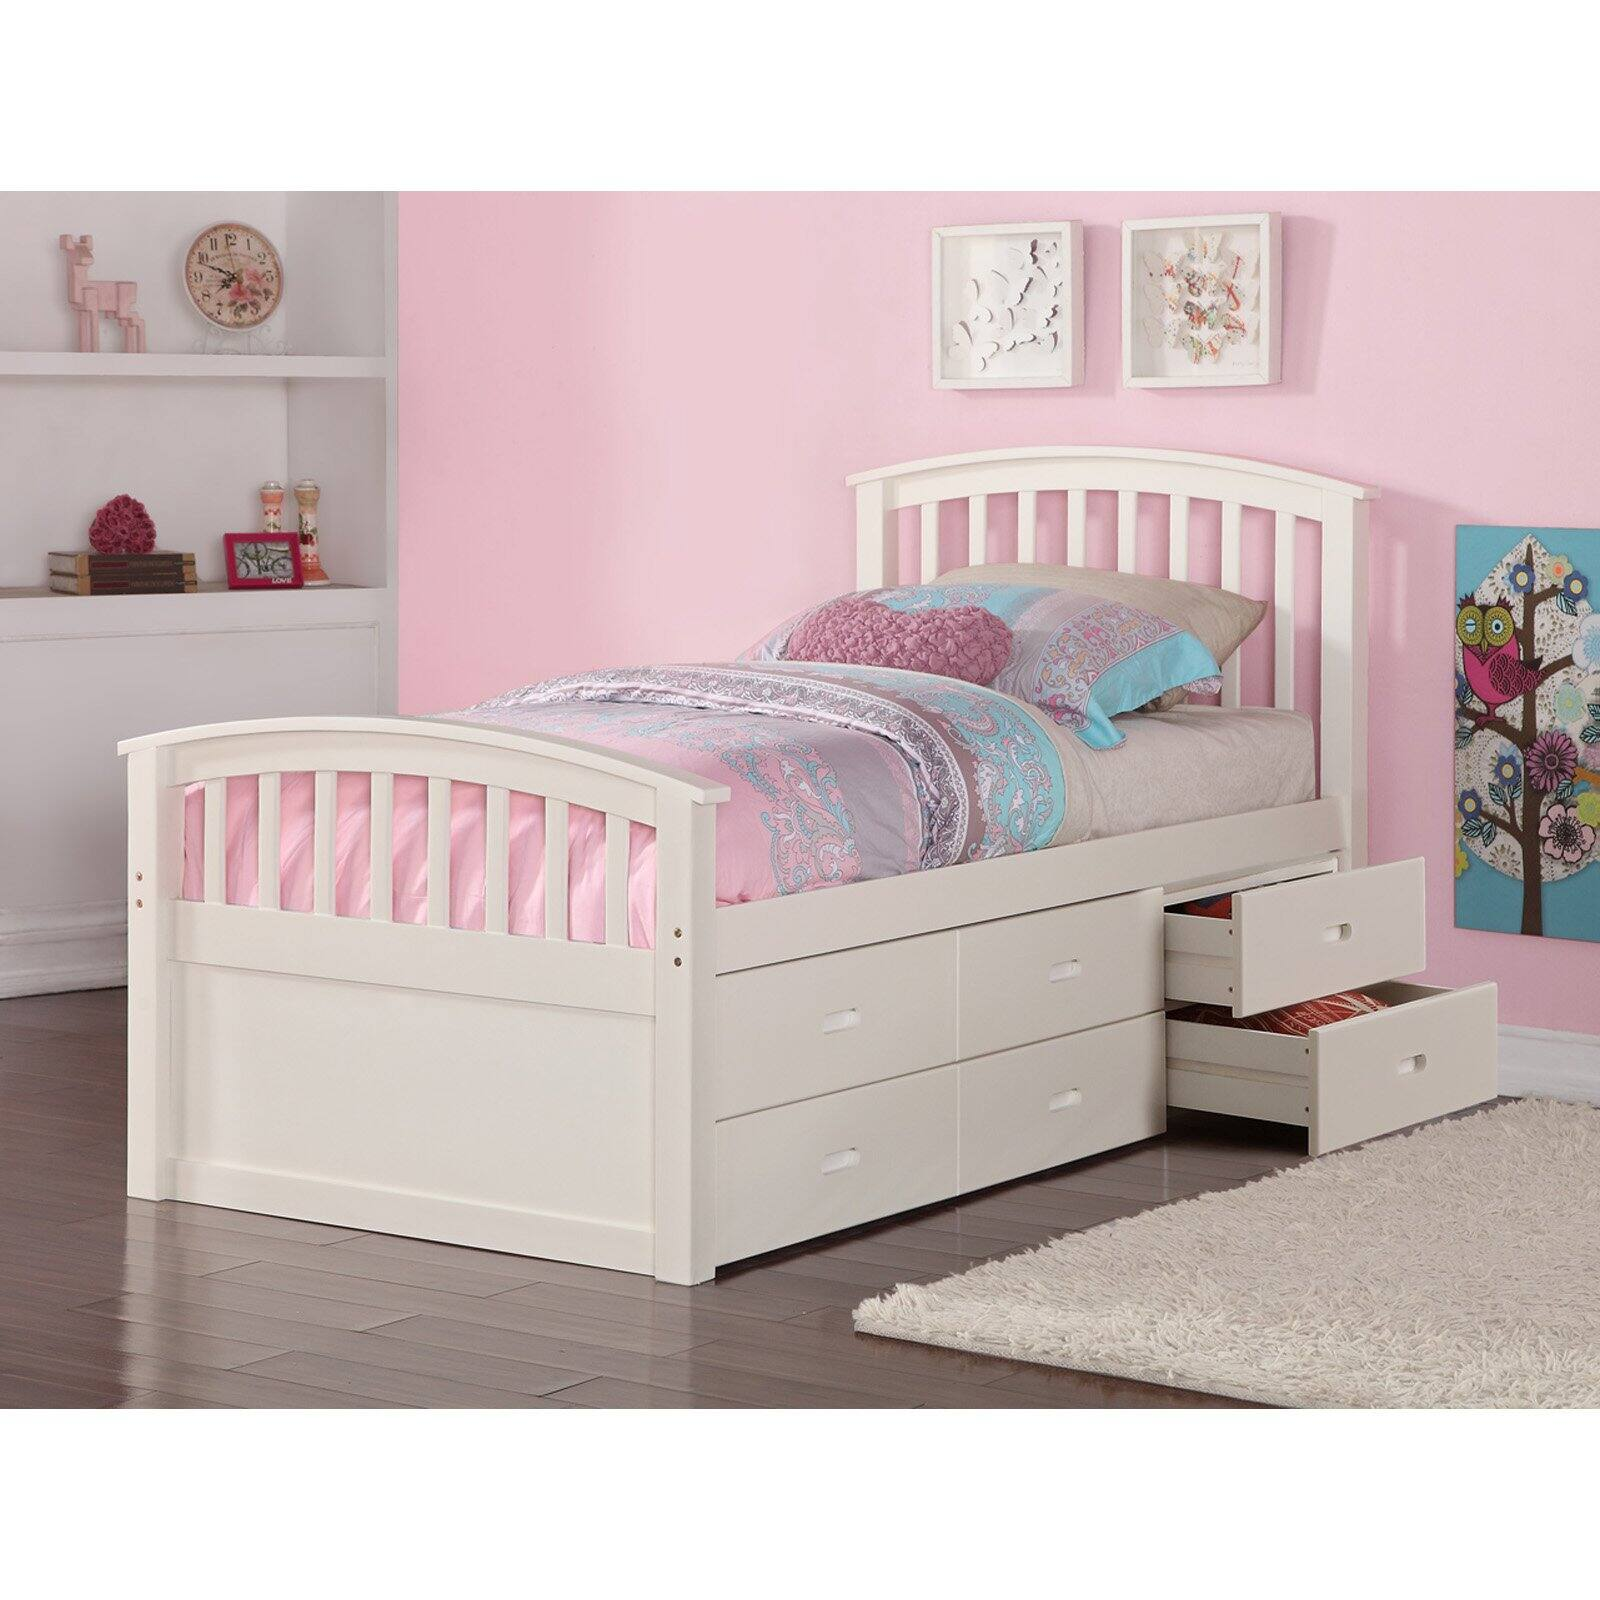 Picture of: Donco Kids Pd 425w 6 Drawer Storage Bed Twin Size 44 White Walmart Com Walmart Com